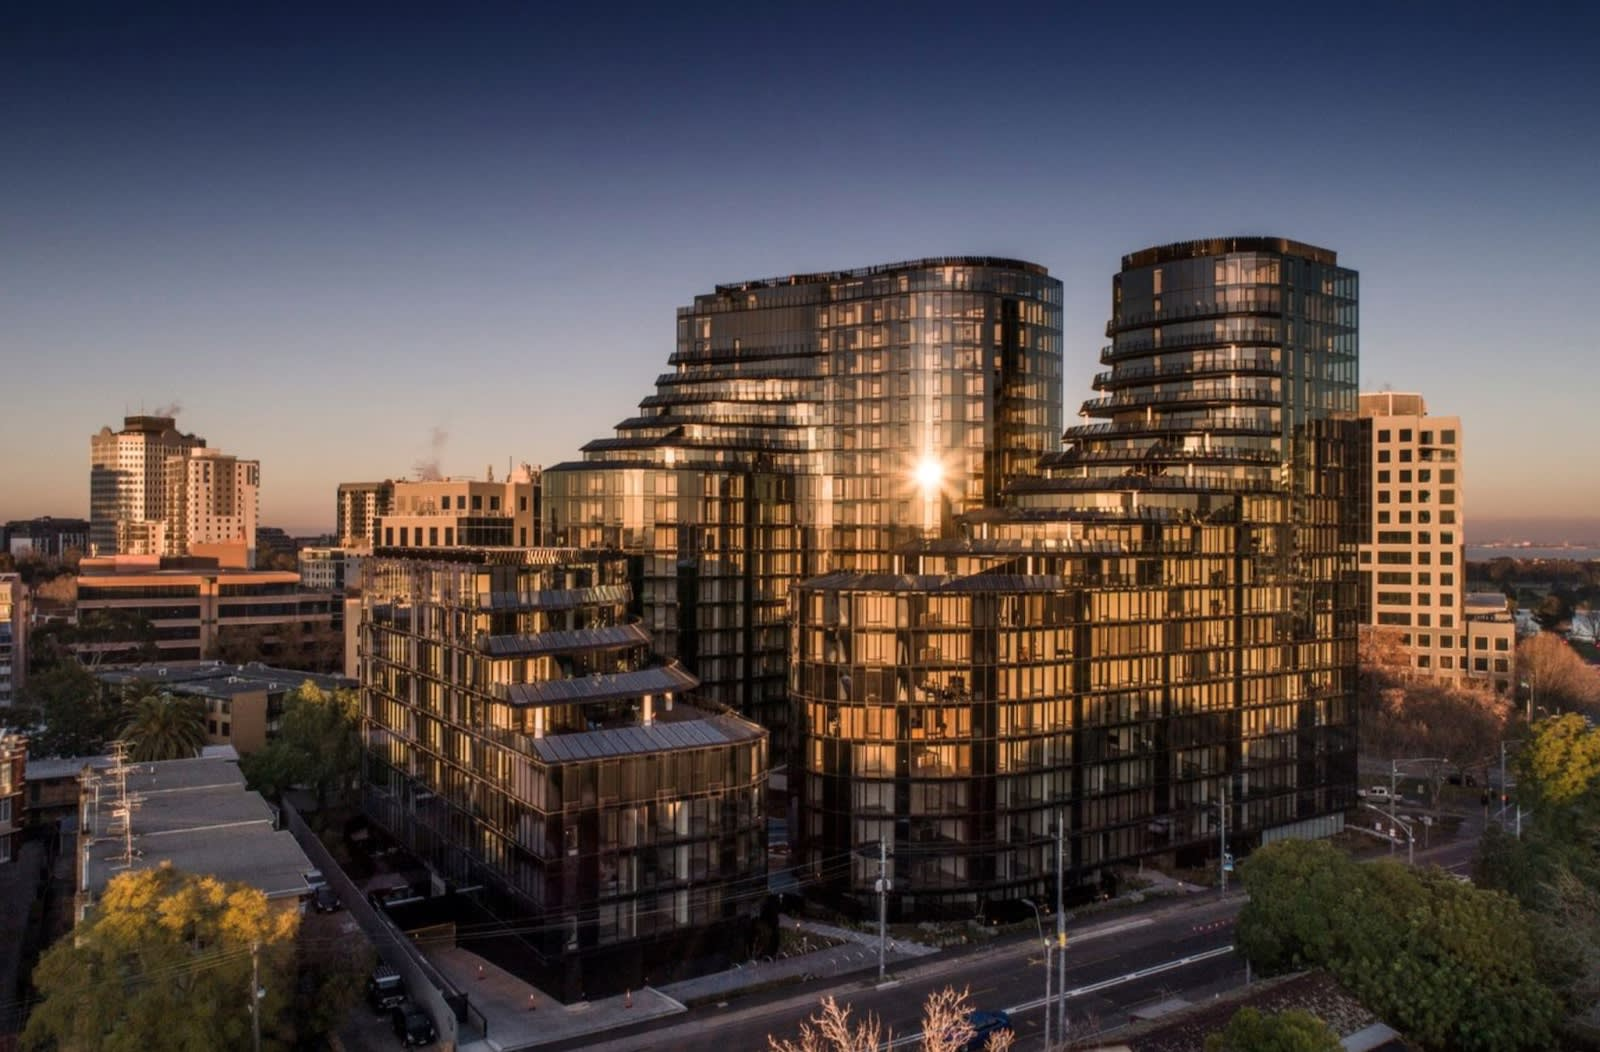 Find out what incentives The Shakespeare Group are offering at their newly completed Melbourne apartment tower St. Boulevard